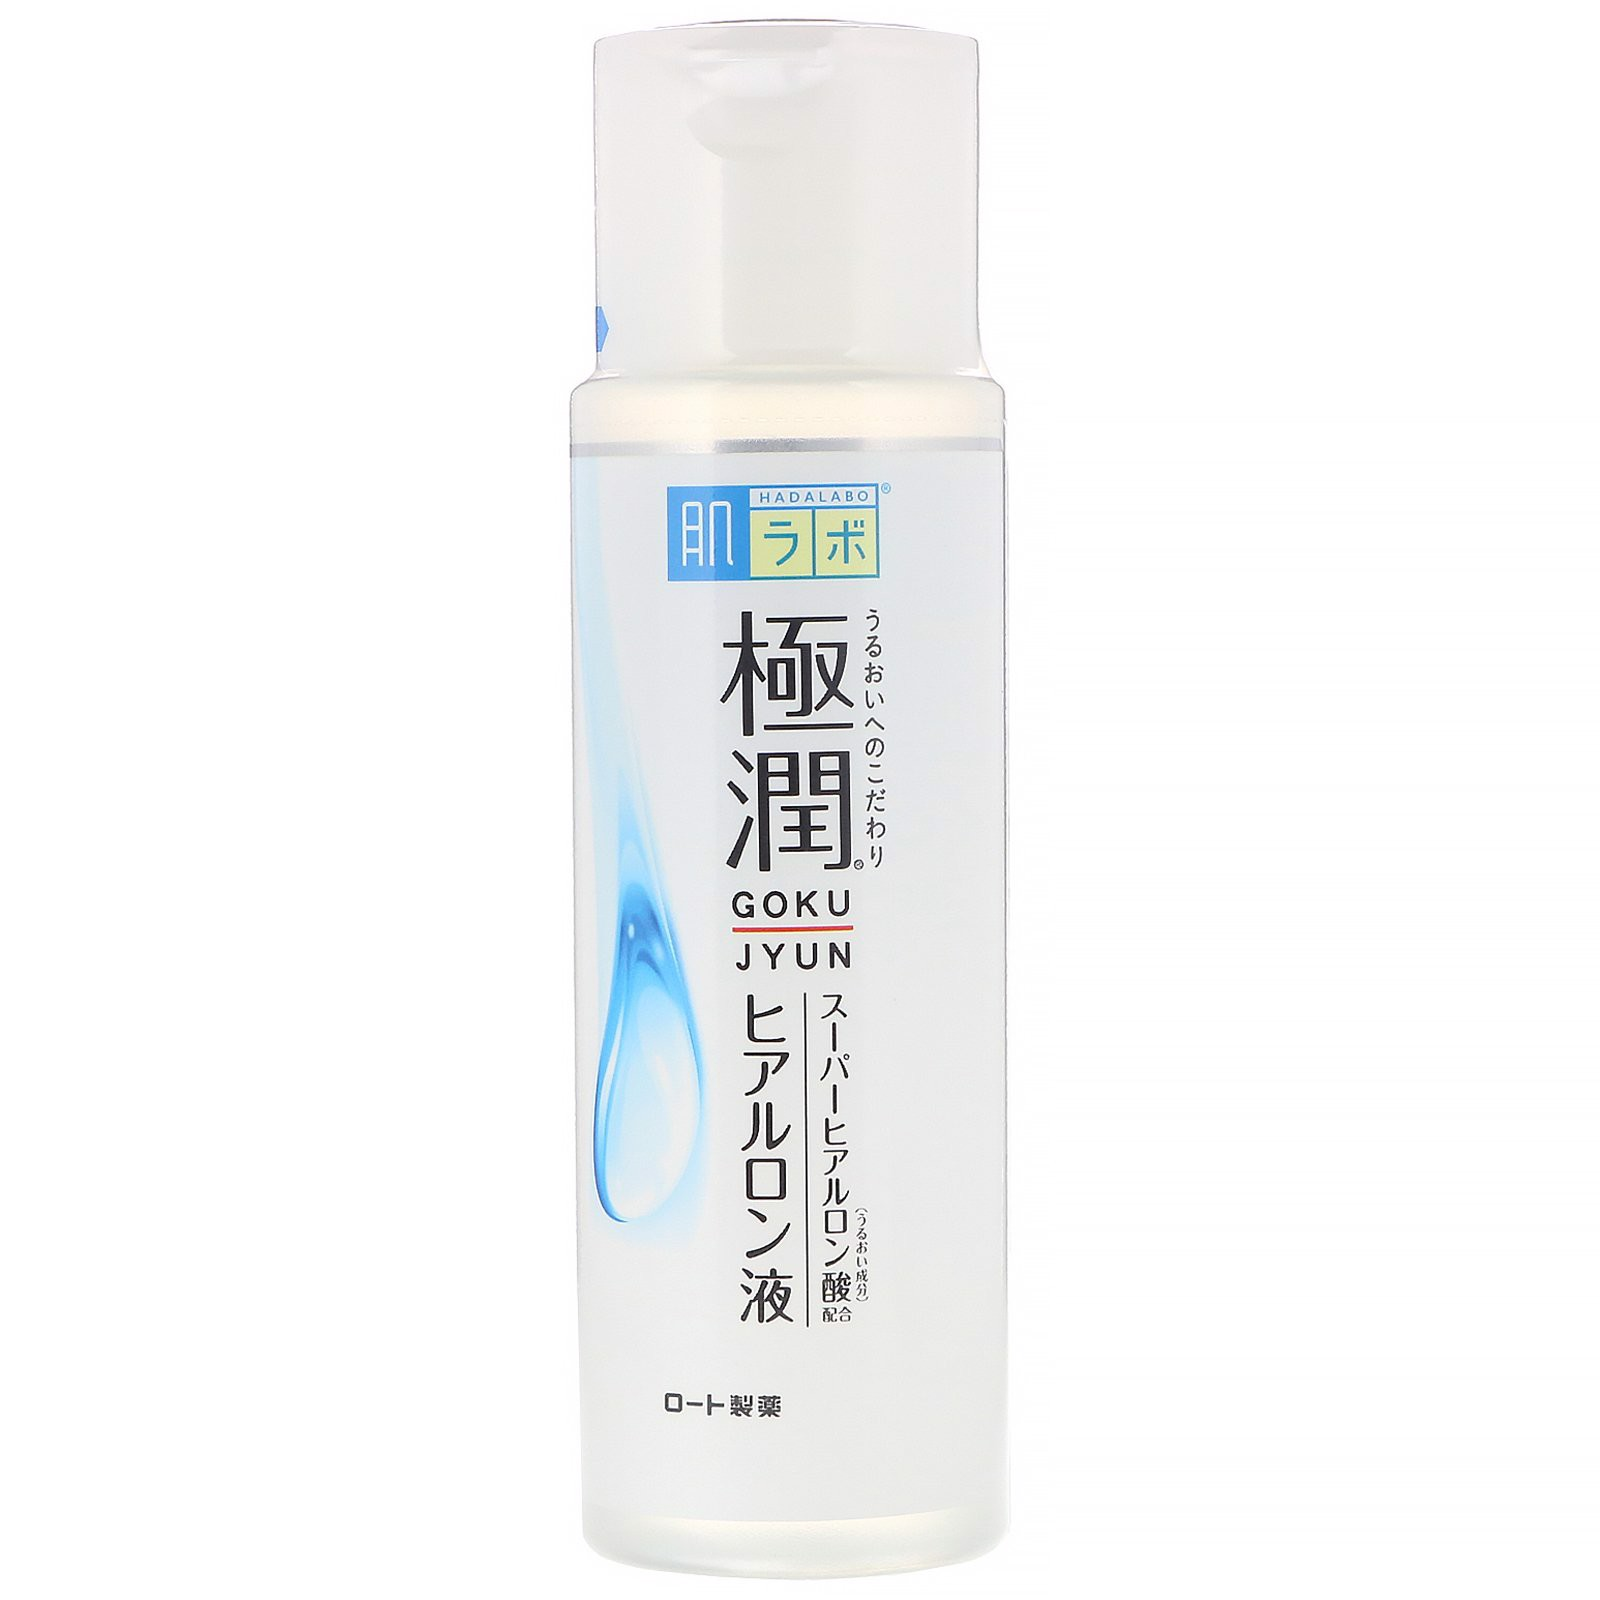 HADALABO - Gokujyun Hydrating Lotion Moist 170ml